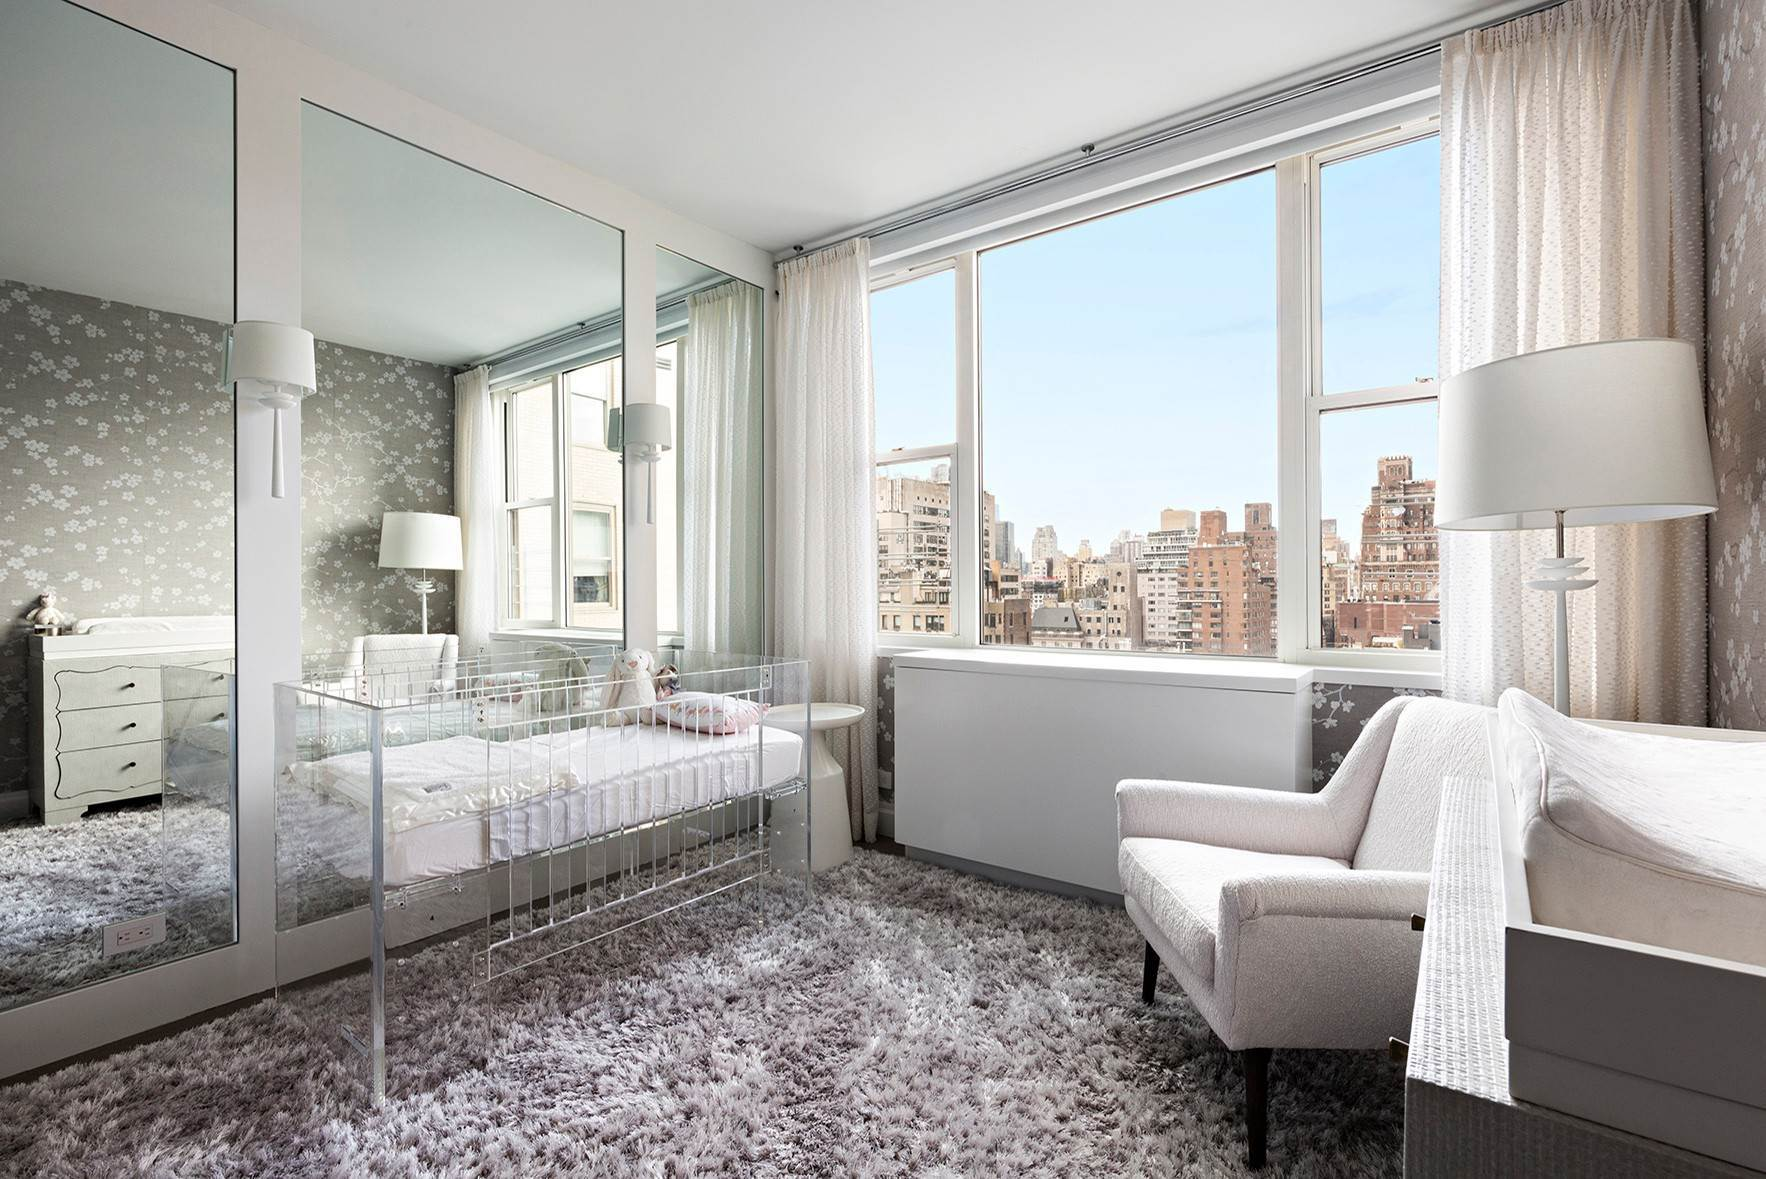 9. Co-op property для того Продажа на Townsend House 176 East 71st Street, 16F New York, Нью-Йорк,10021 Соединенные Штаты